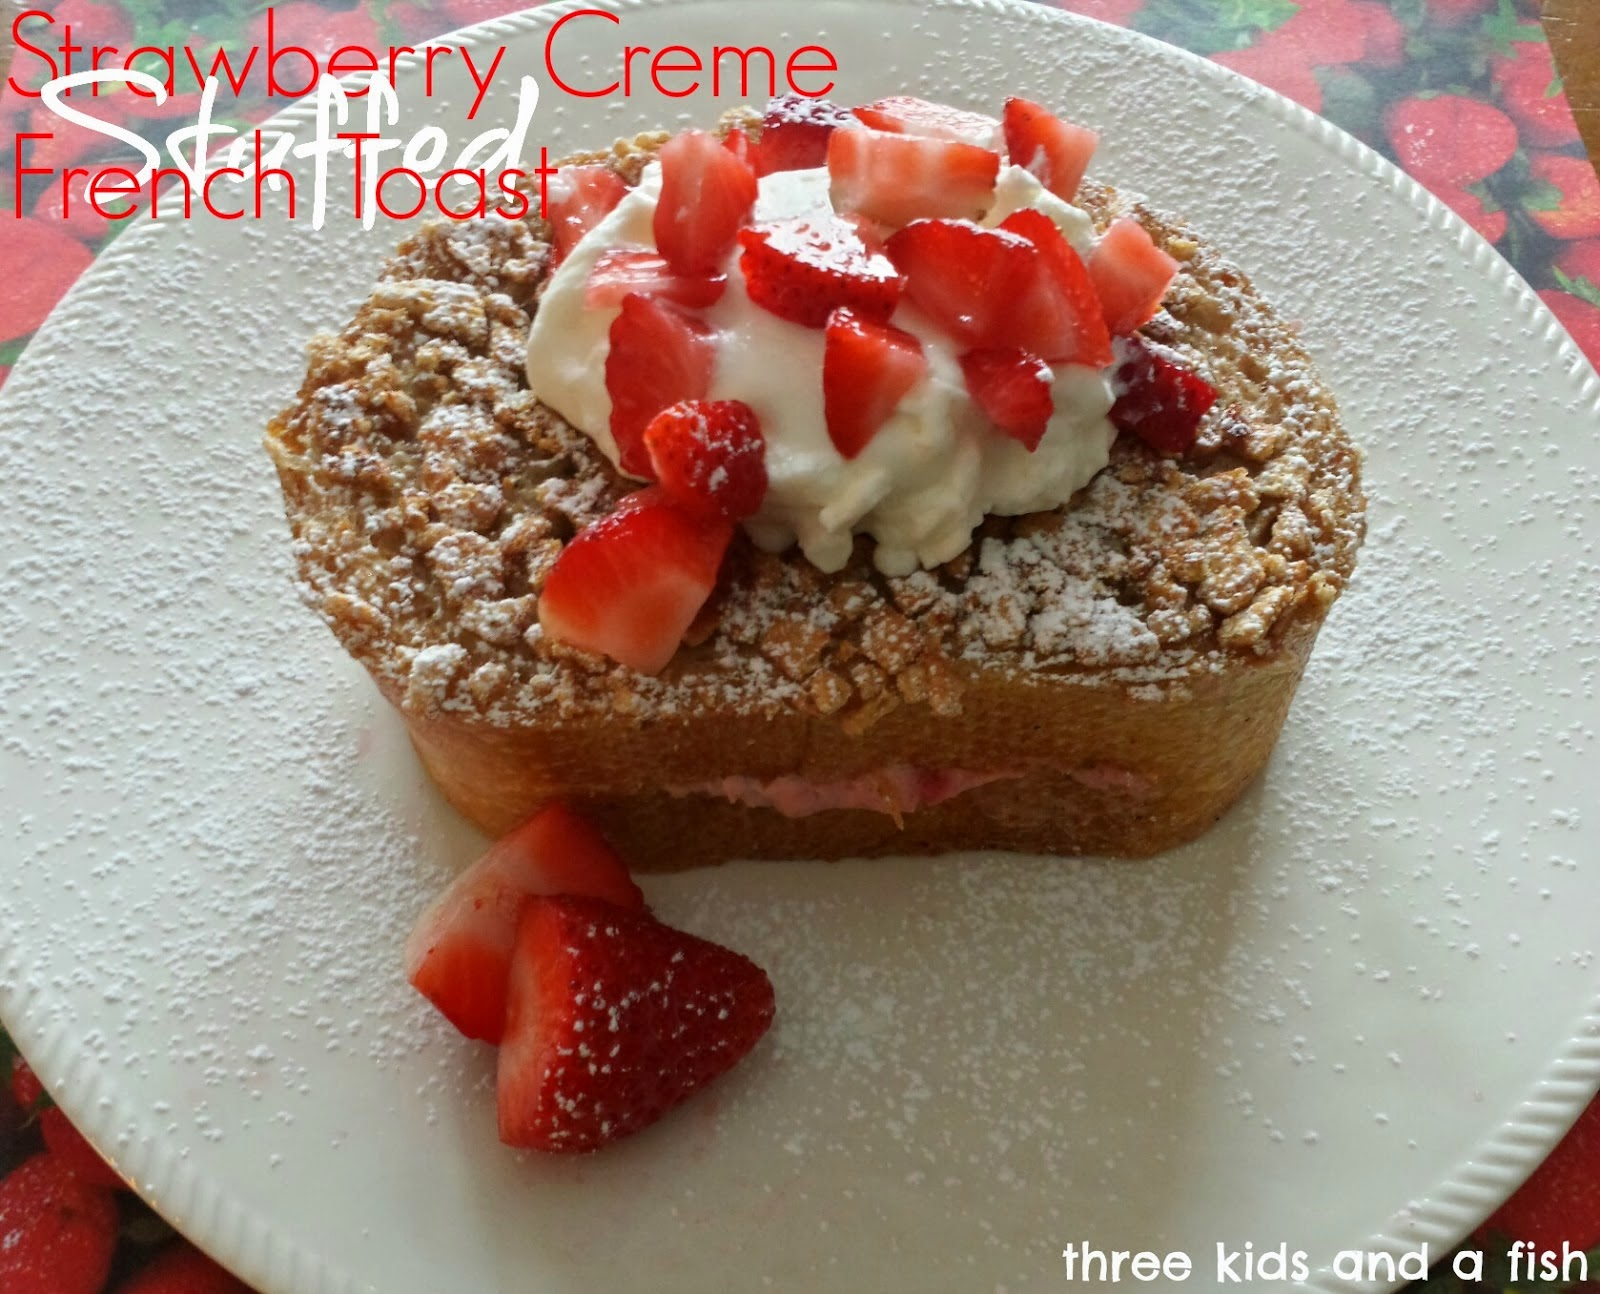 strawberry creme stuffed french toast